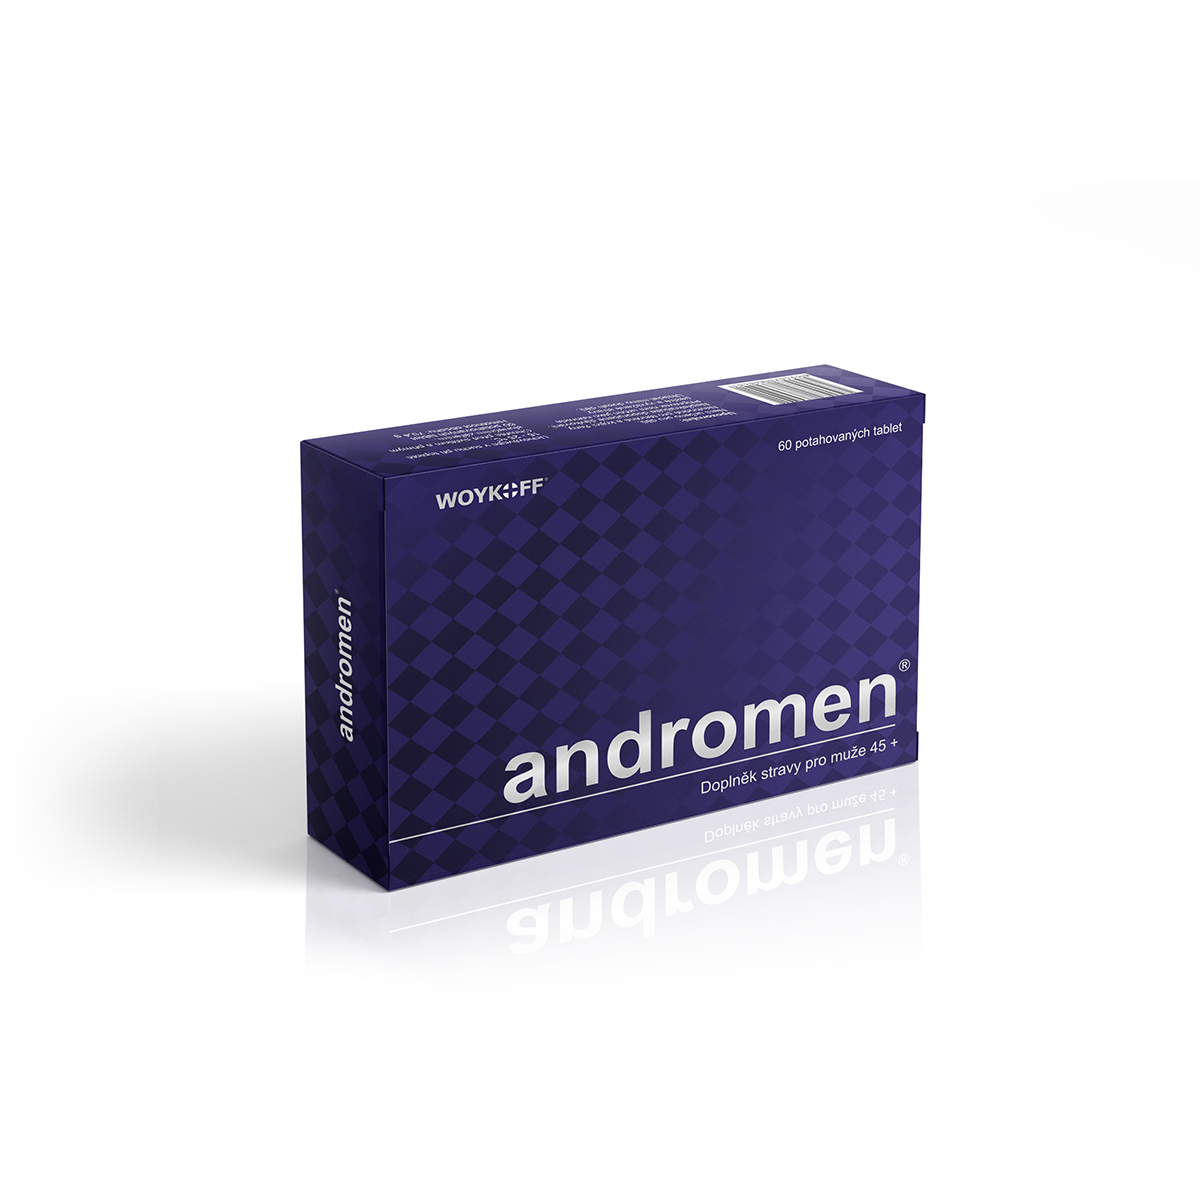 Woykoff andromen 60 tbl